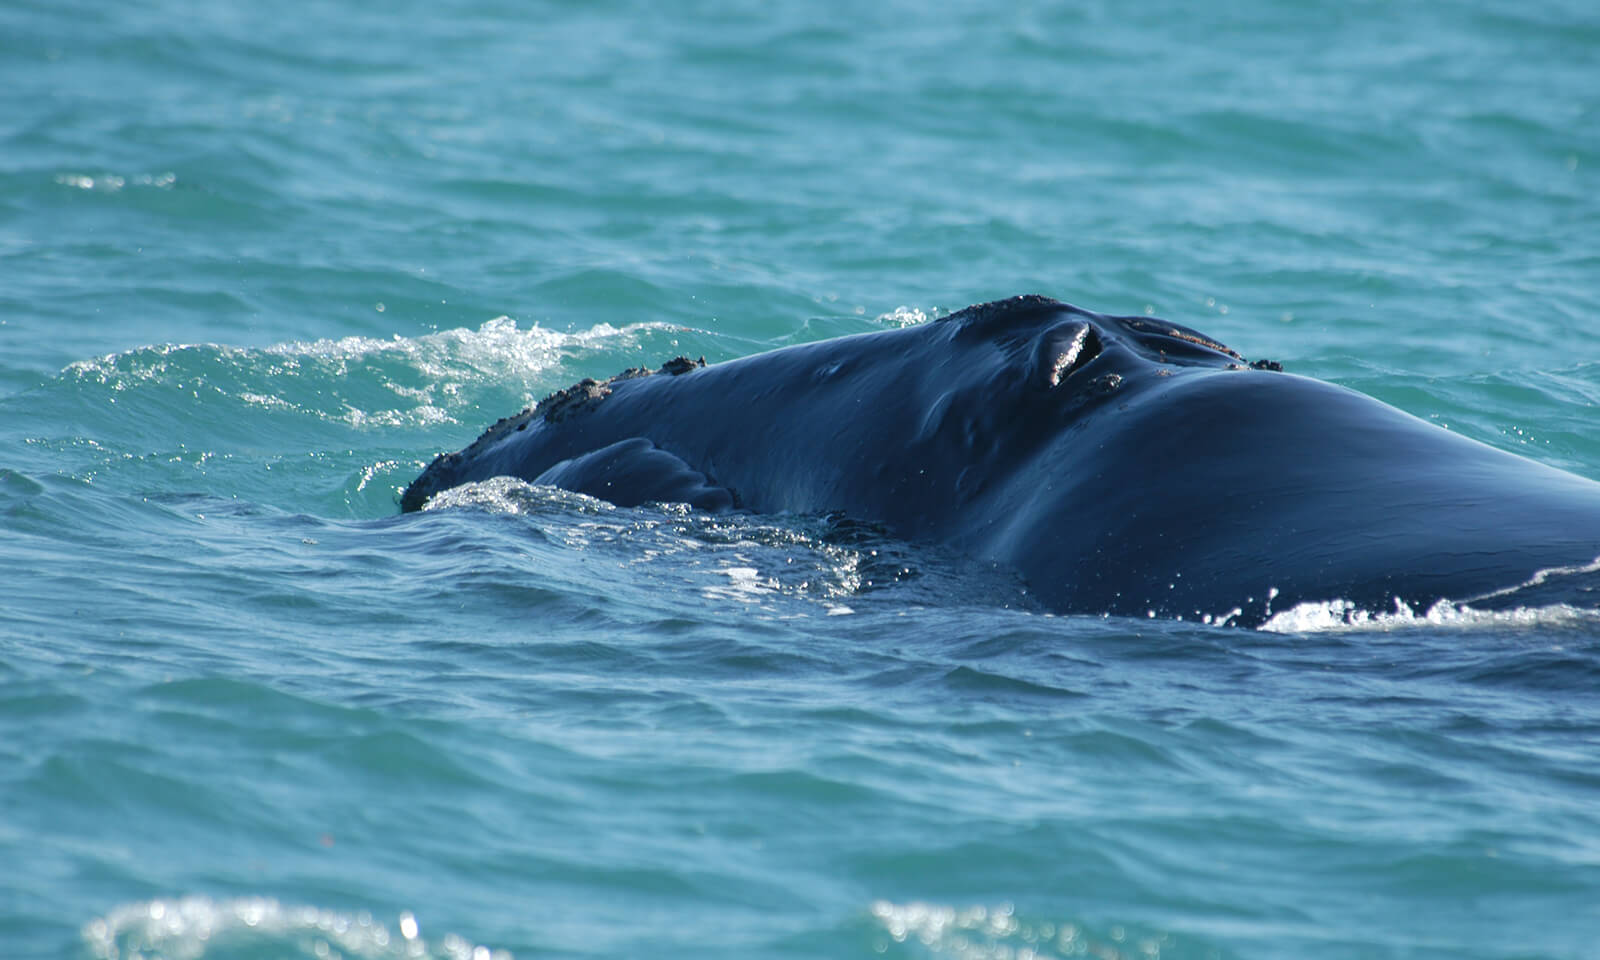 North Atlantic right whale off the Florida Gulf coast